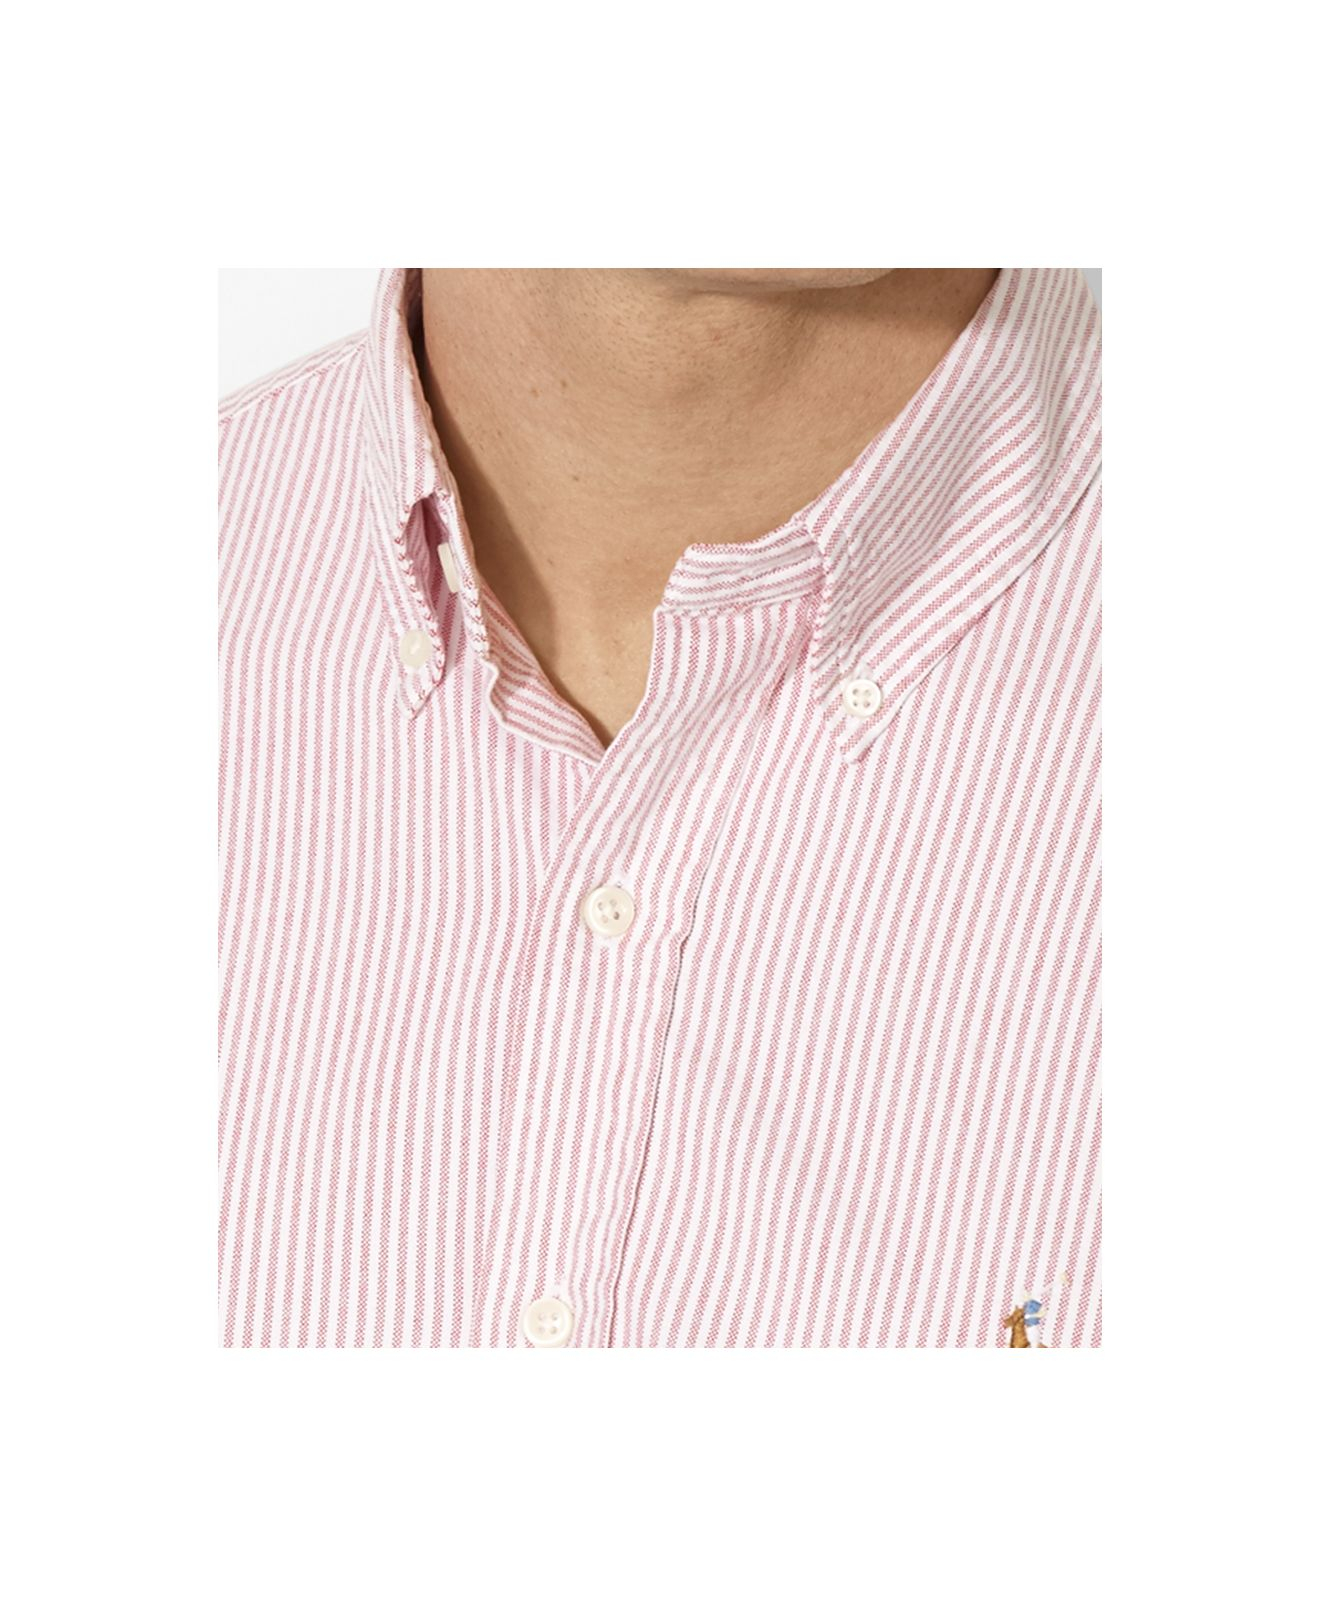 729252c10 Polo Ralph Lauren Classic-Fit Striped Oxford Shirt in Pink for Men ...